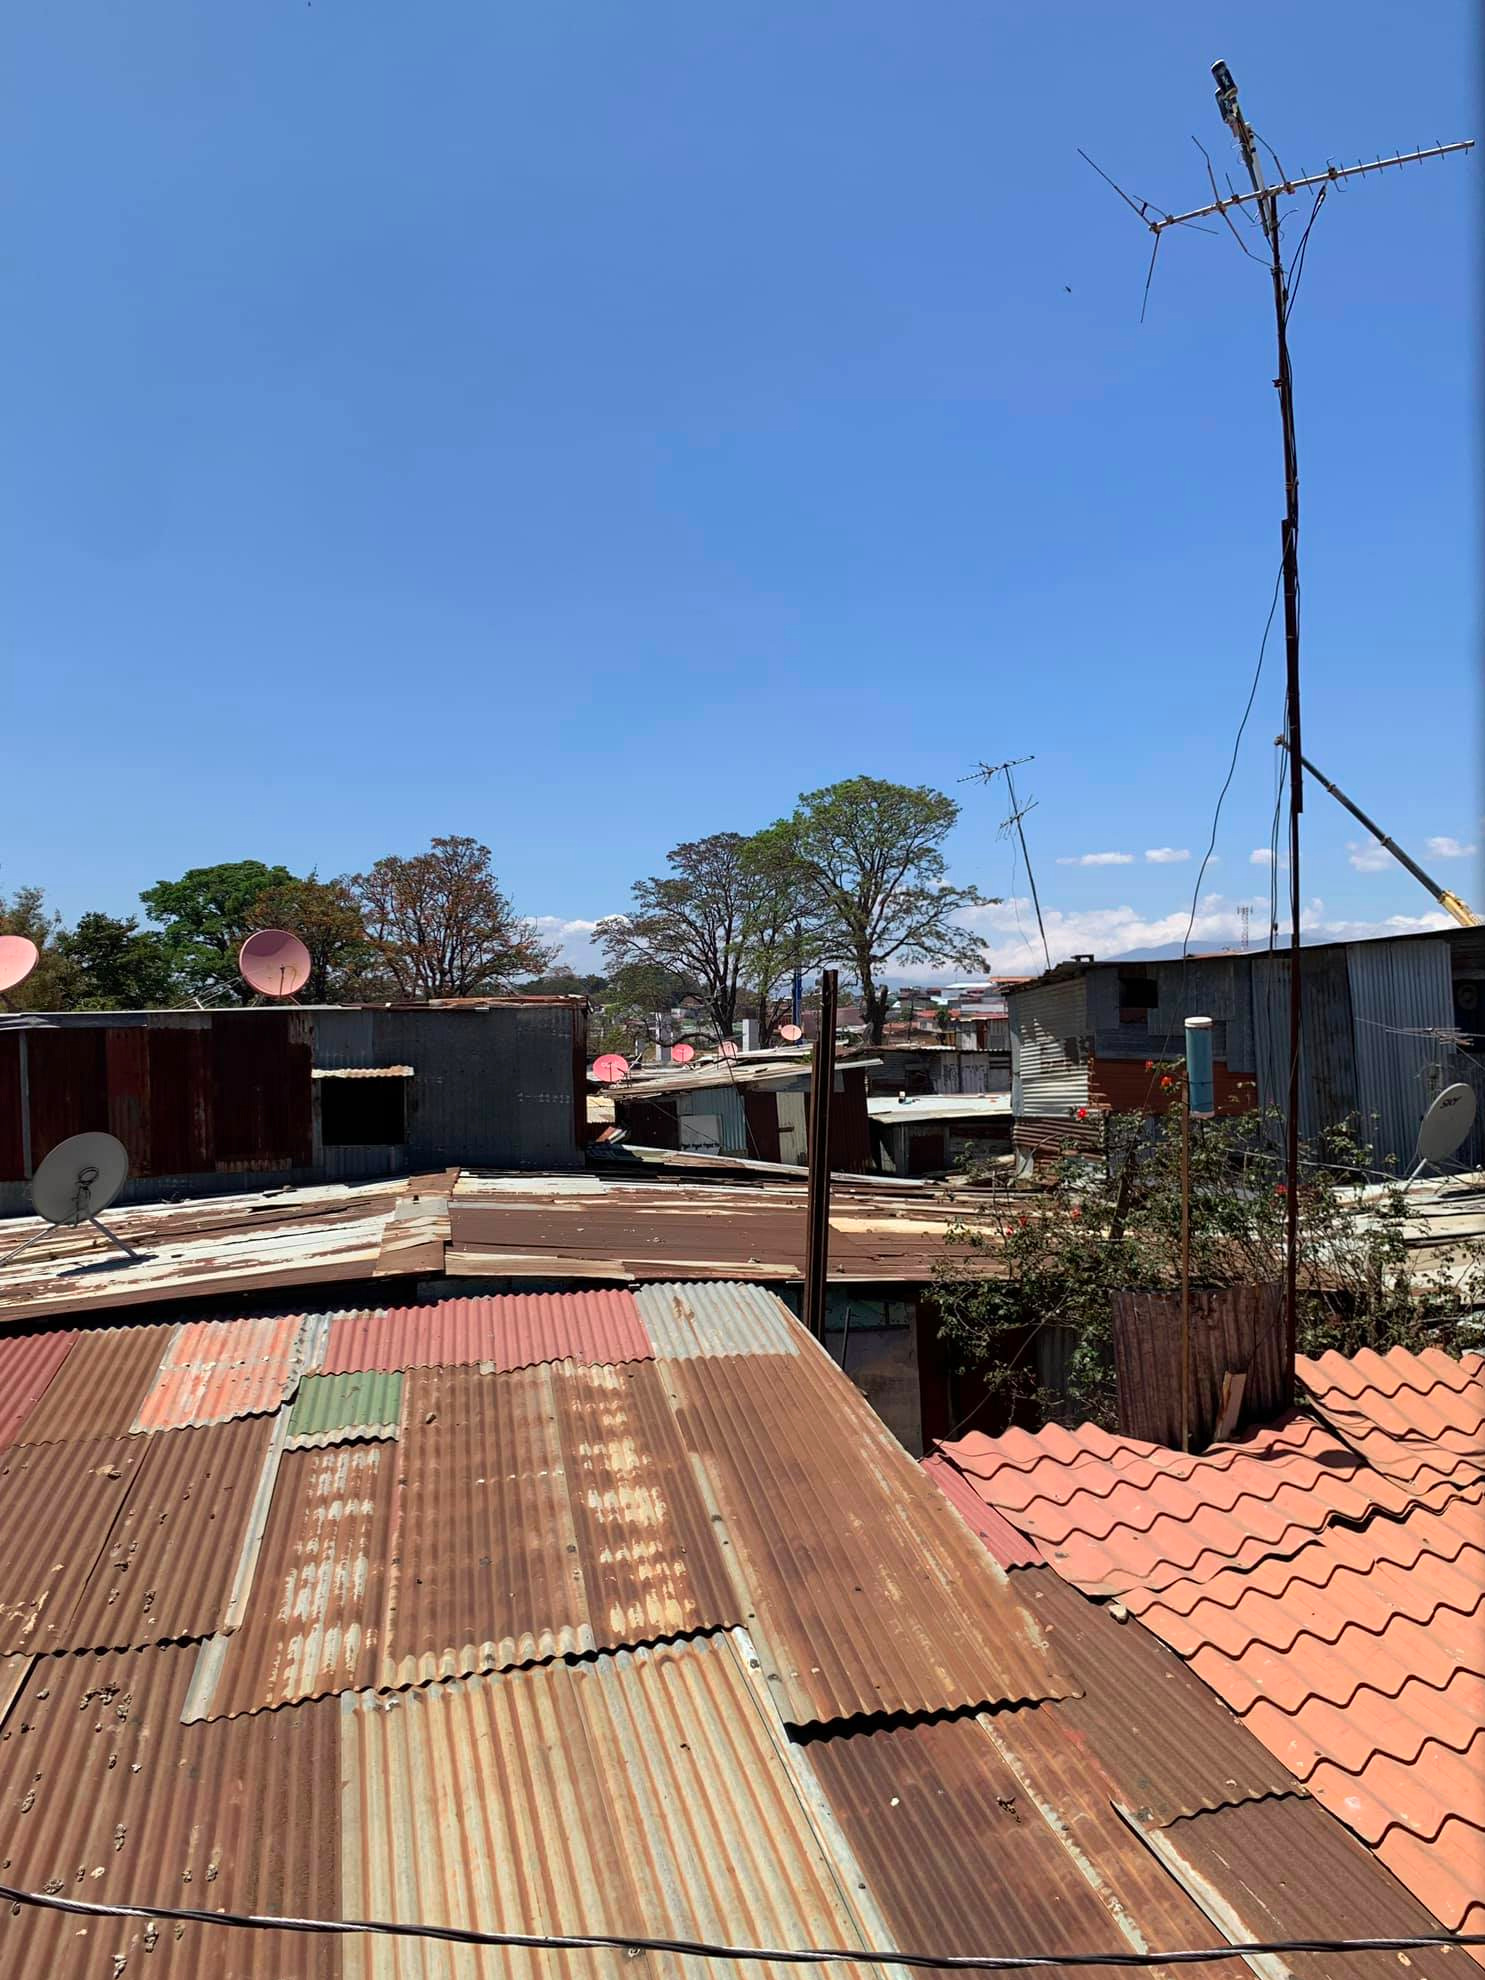 More than 55,000 Nicaraguans have sought refuge in Costa Rica in the last year. -